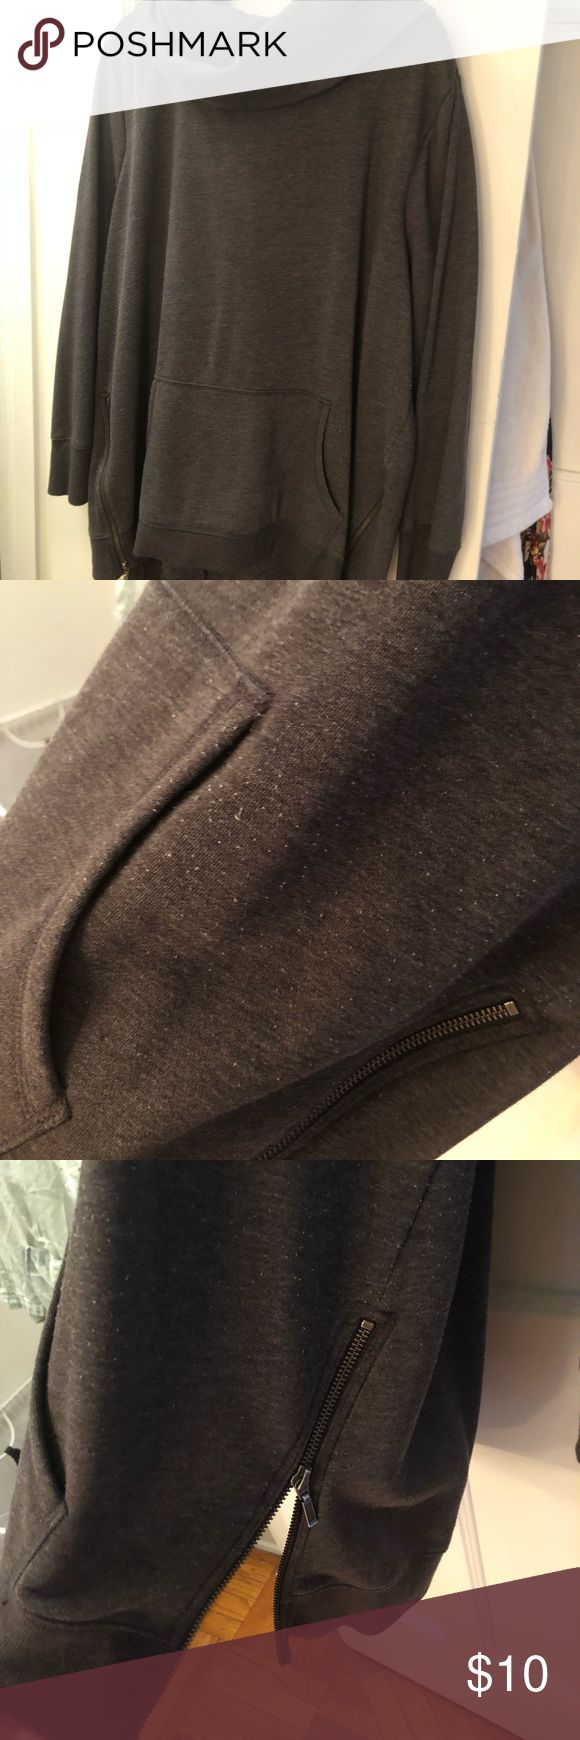 Athleisure cowl neck sweatshirt with zipper detail Comfy and hooded with functioning pockets this is perfect for a workout or a chill day at home. Zipper Detail unzips! This is definitely worn hence the low price. Old Navy Tops Sweatshirts & Hoodies